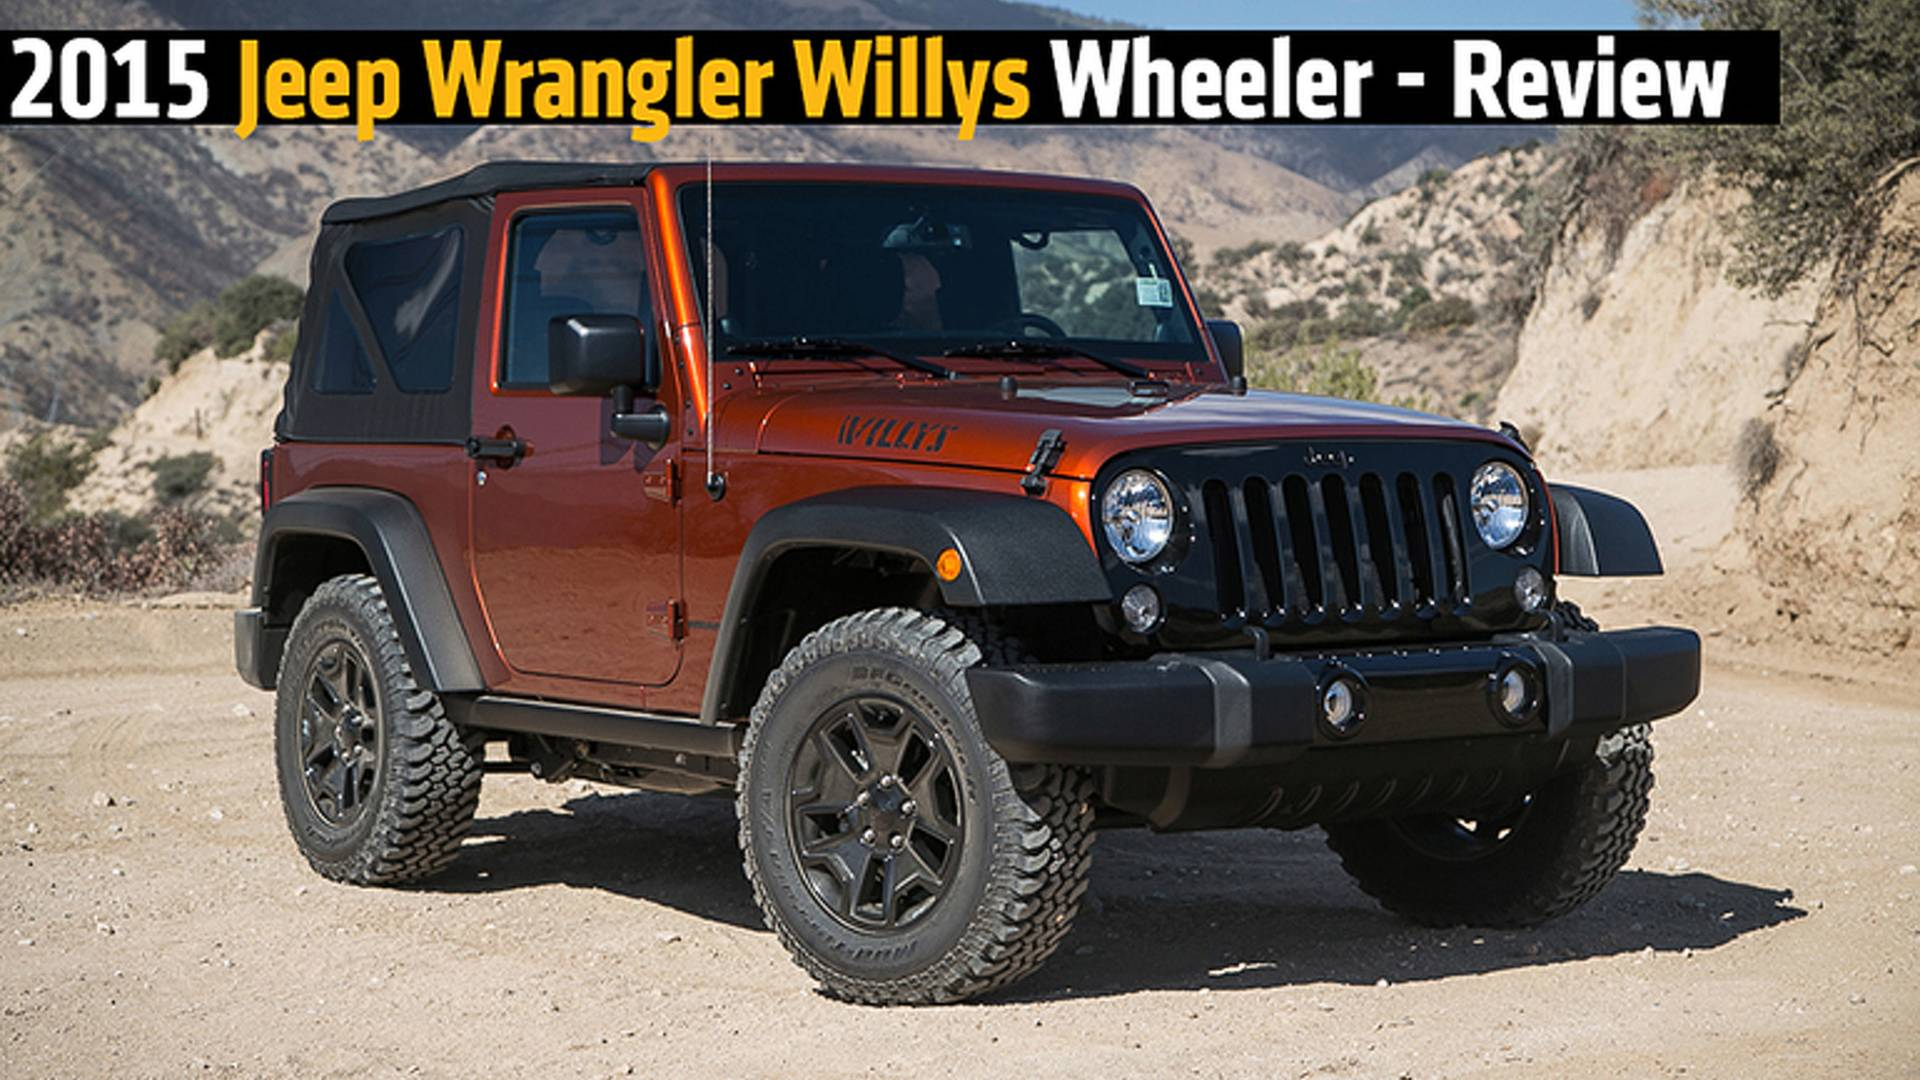 2015 Jeep Wrangler Willys Wheeler Review